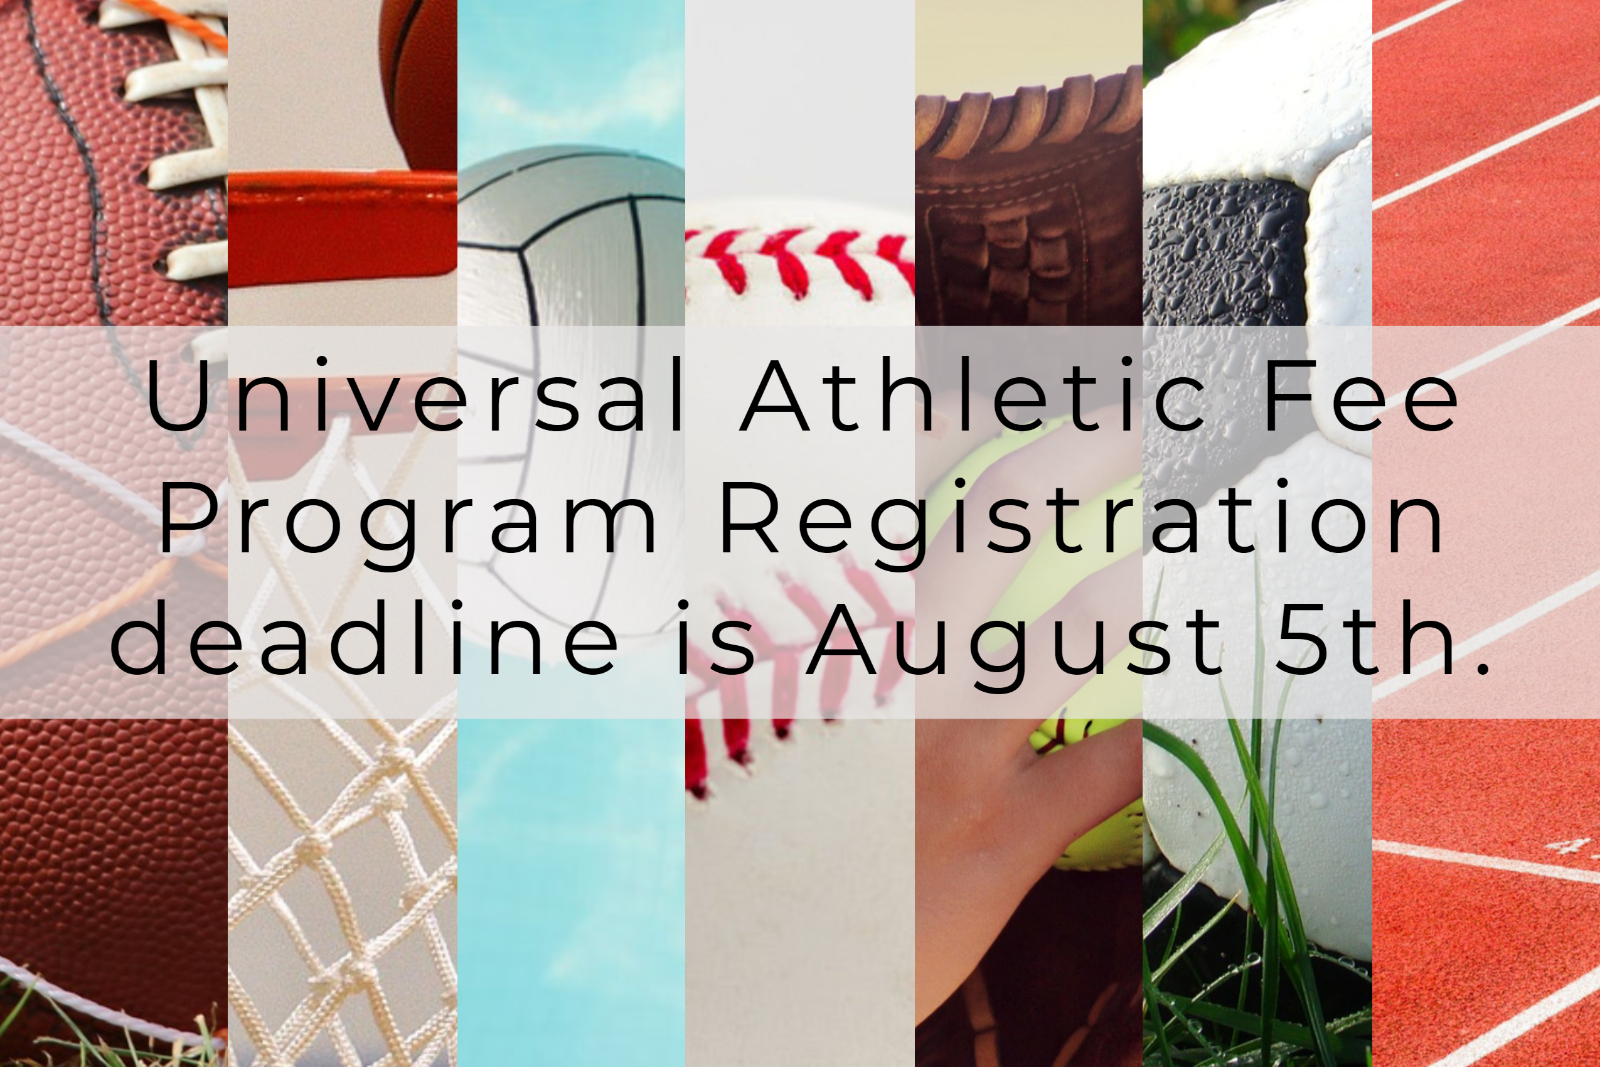 Universal Athletic Fee Program registration deadline is August 5th.